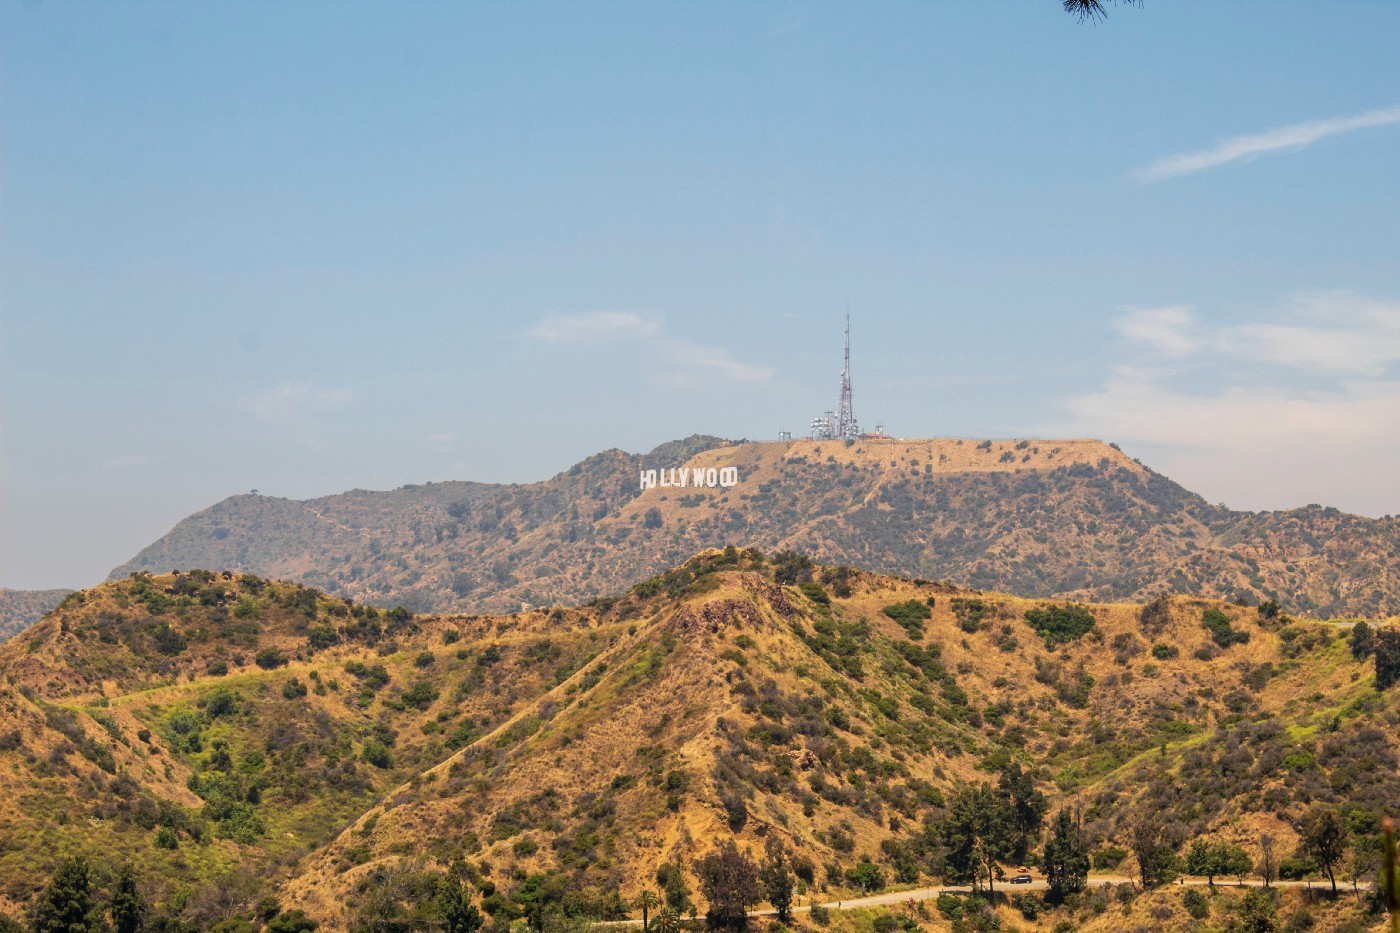 A view of the famous Hollywood sign from a distance.